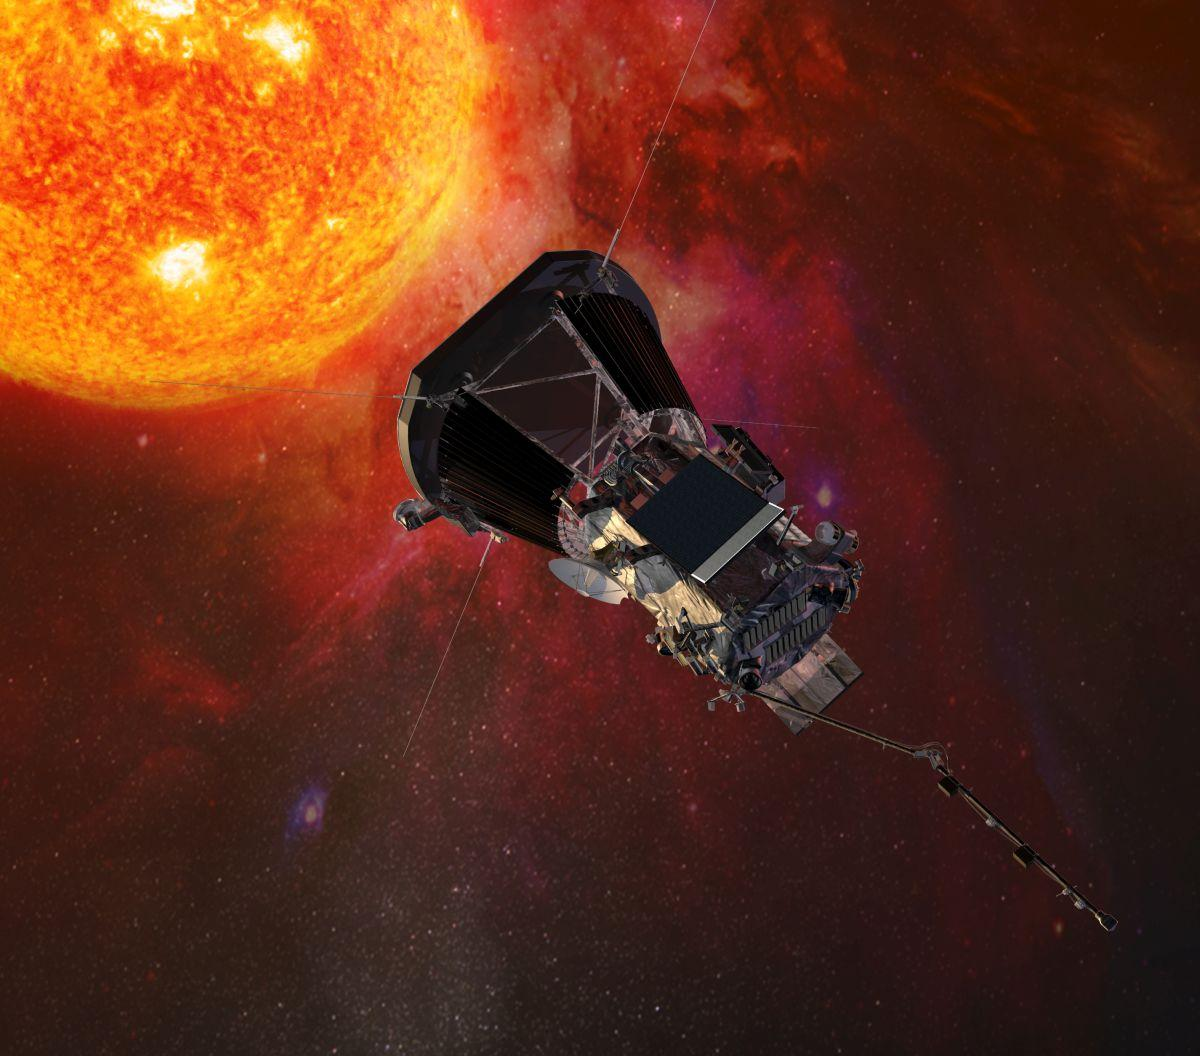 Космічний зонд для вивчення Сонця Parker Solar Probe / фото Johns Hopkins University Applied Physics Laboratory